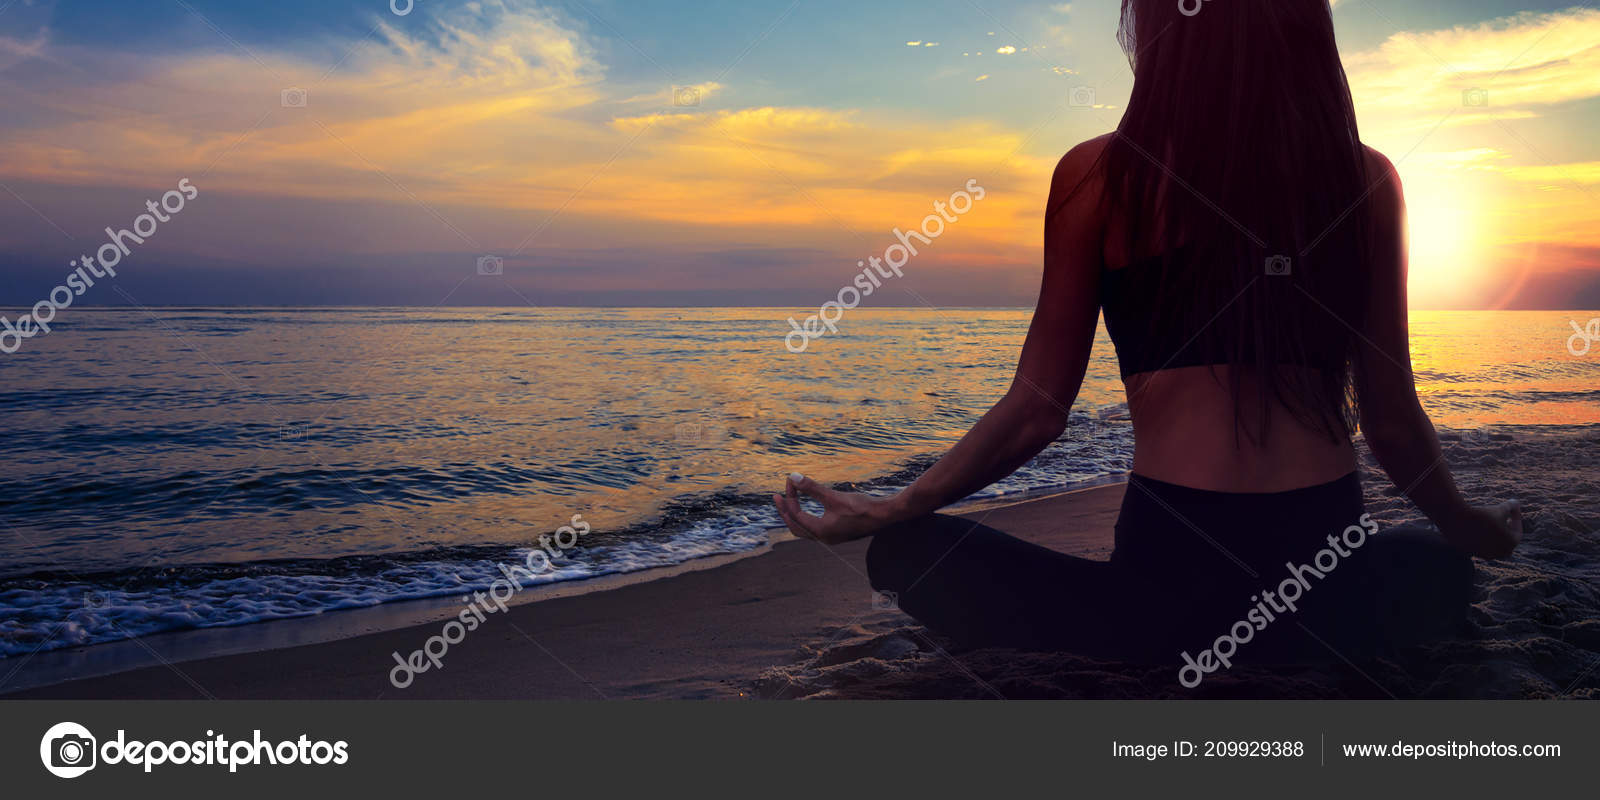 Yoga Meditation Banner Woman Lotus Pose Seaside Beach Background Picturesque Stock Photo C Wdnet 209929388